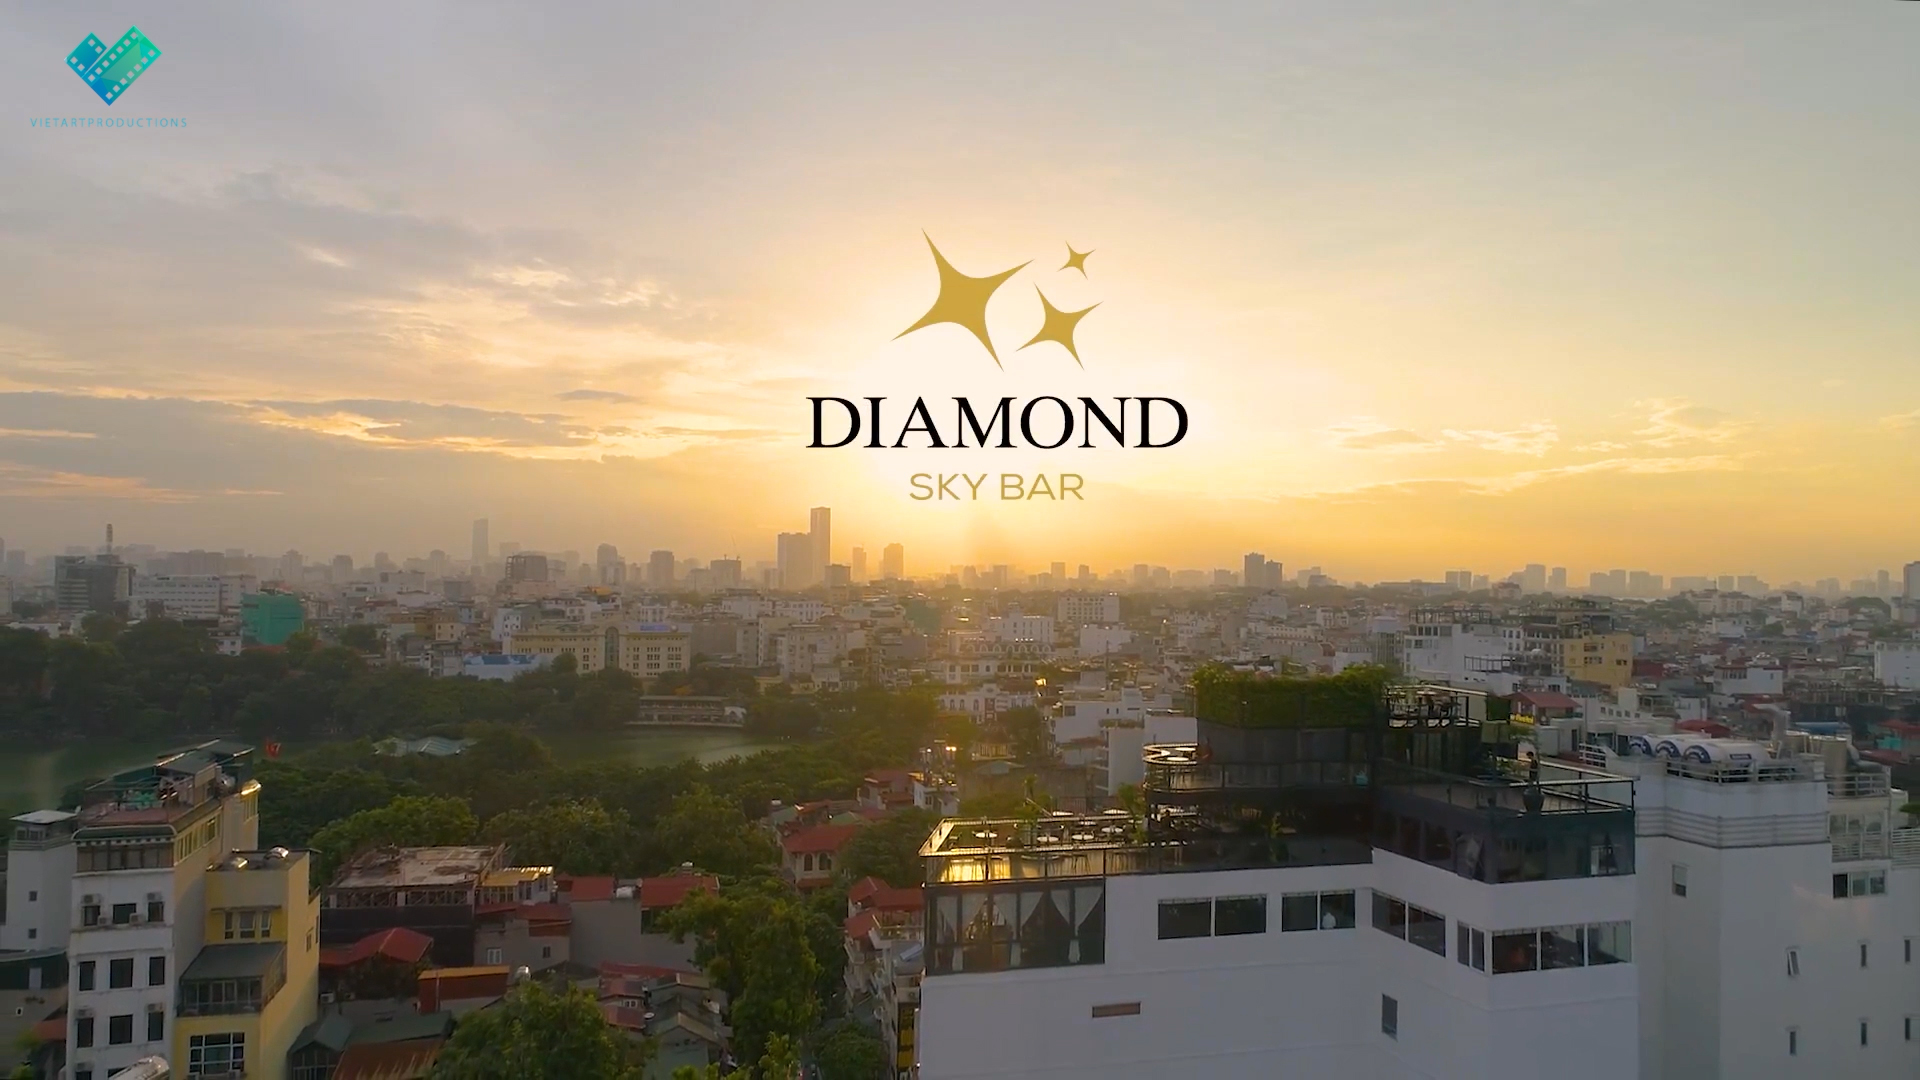 DIAMOND SKYBAR